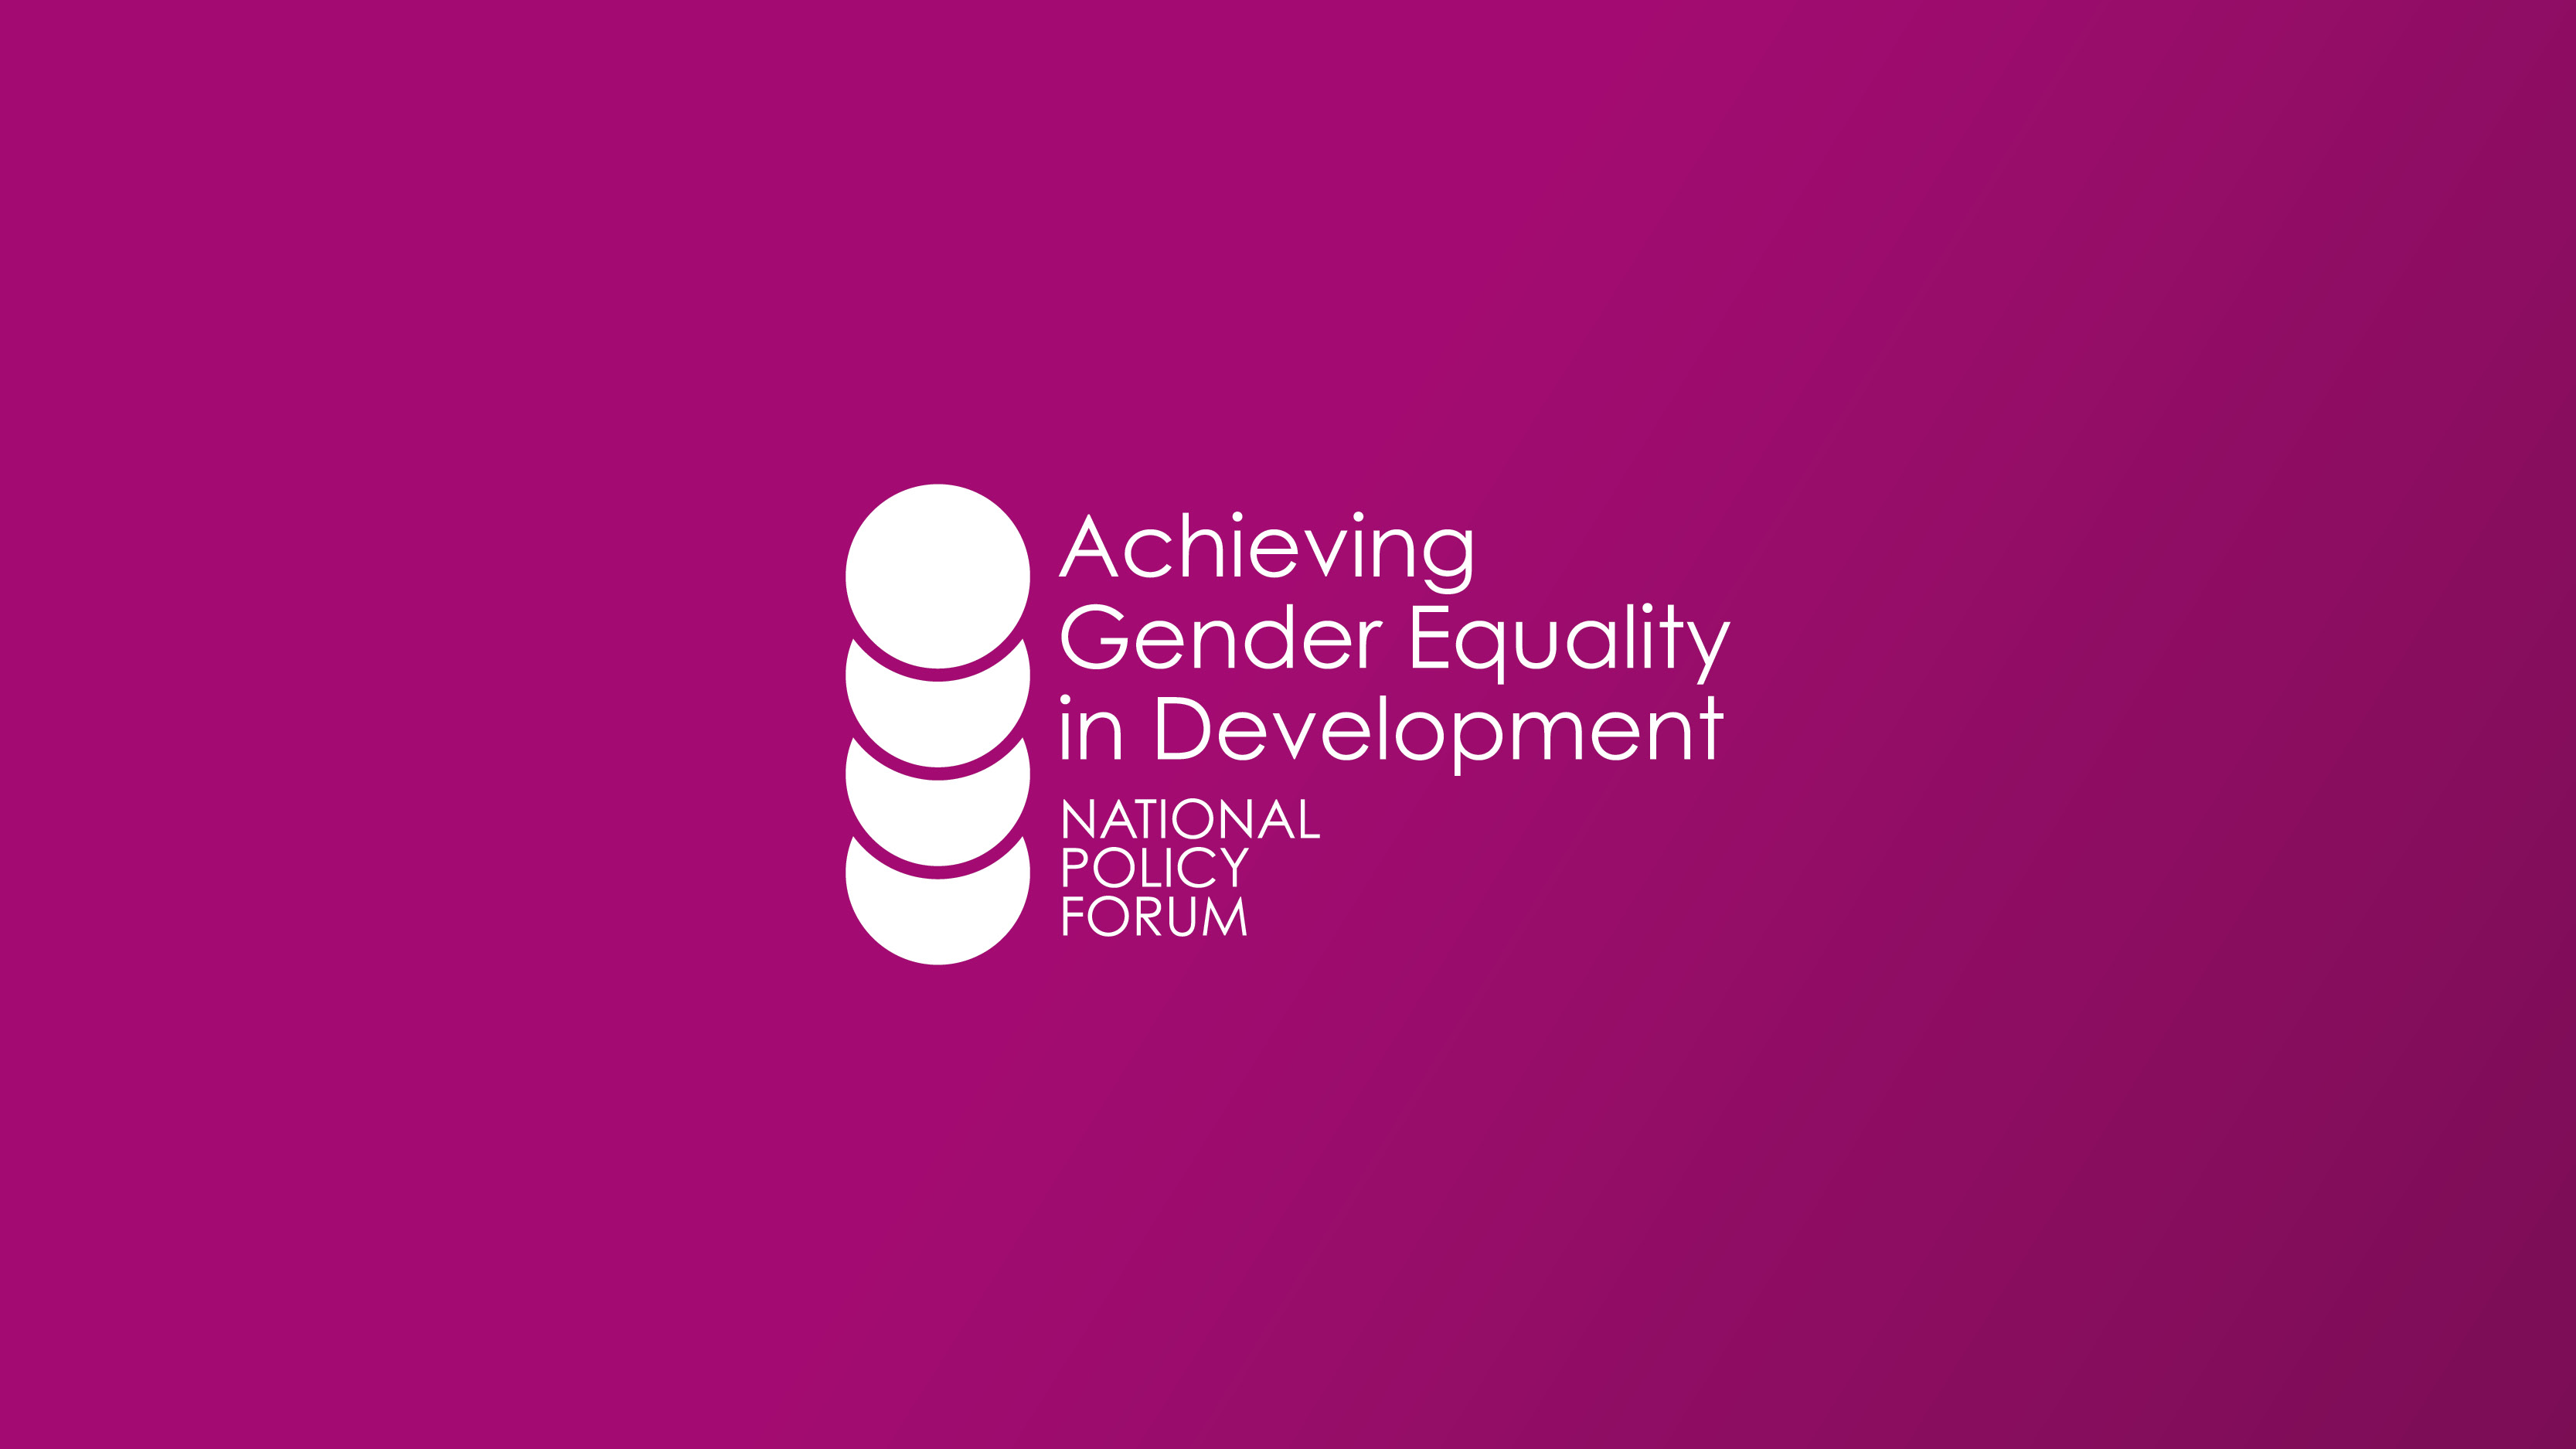 Achieving Gender Equality in Development logo